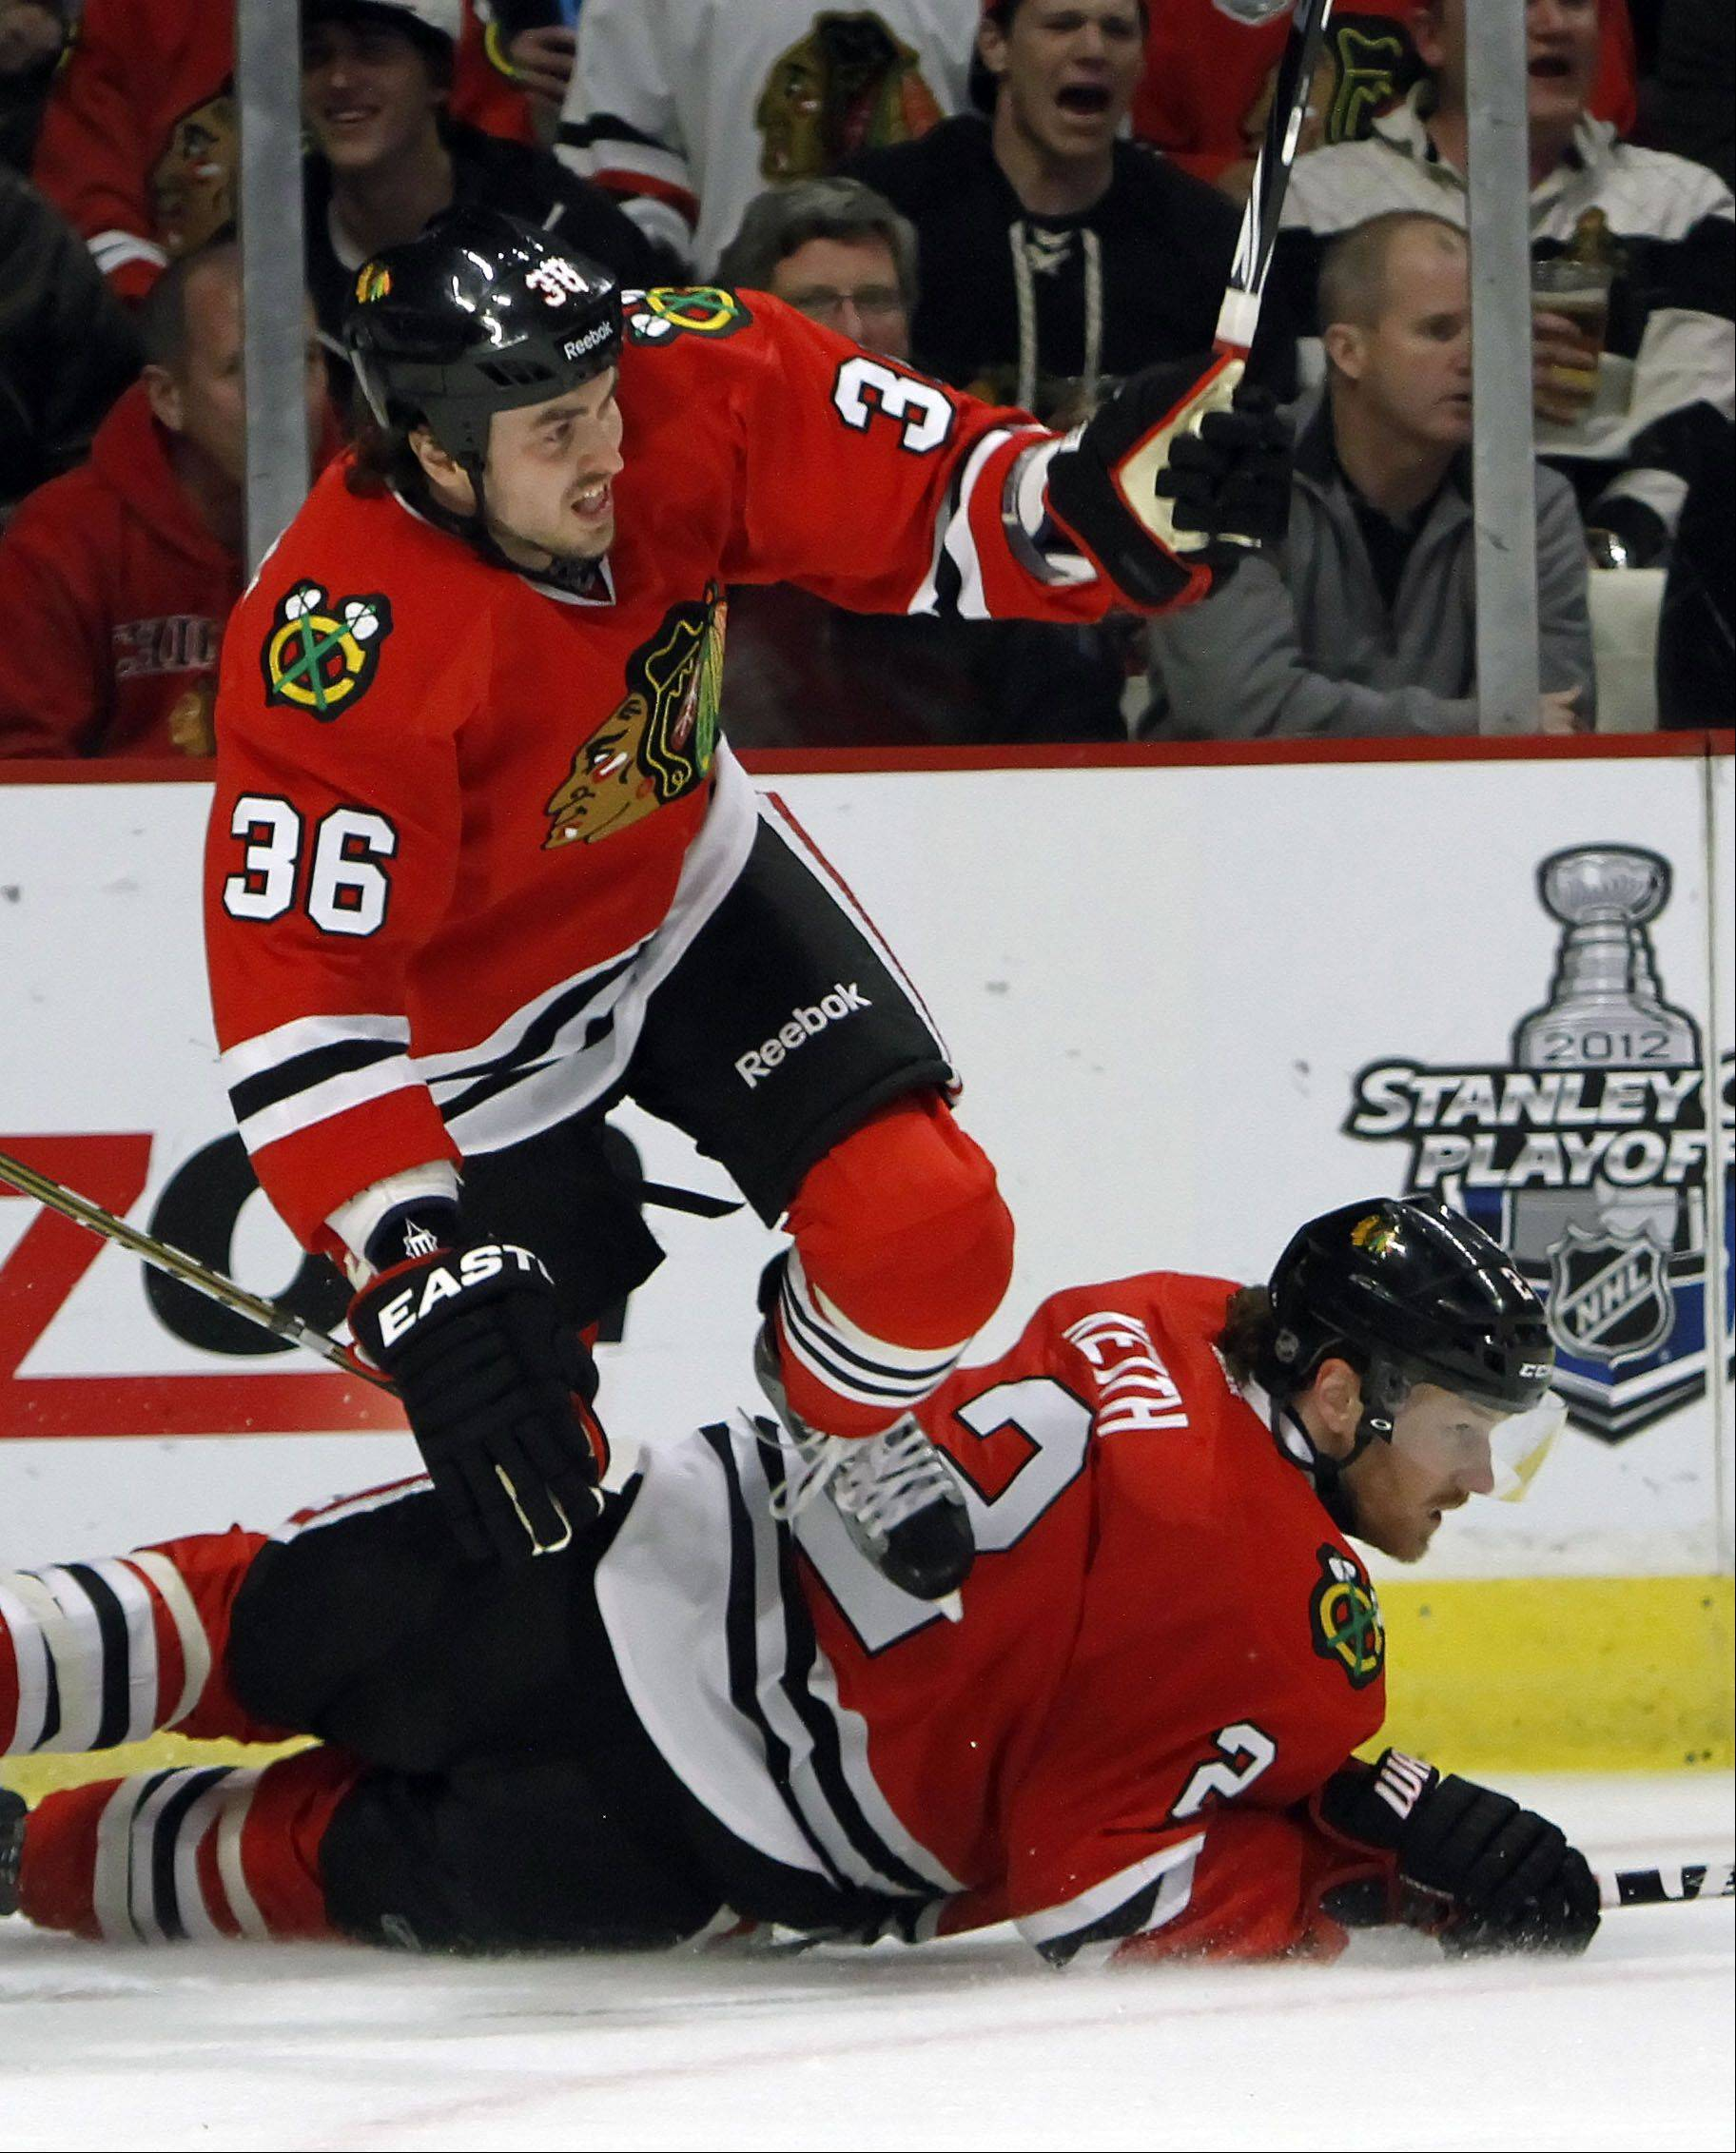 Dave Bolland, left, has missed the last four games with a foot injury but may return to the lineup today when the Hawks take on the Blues in St. Louis.